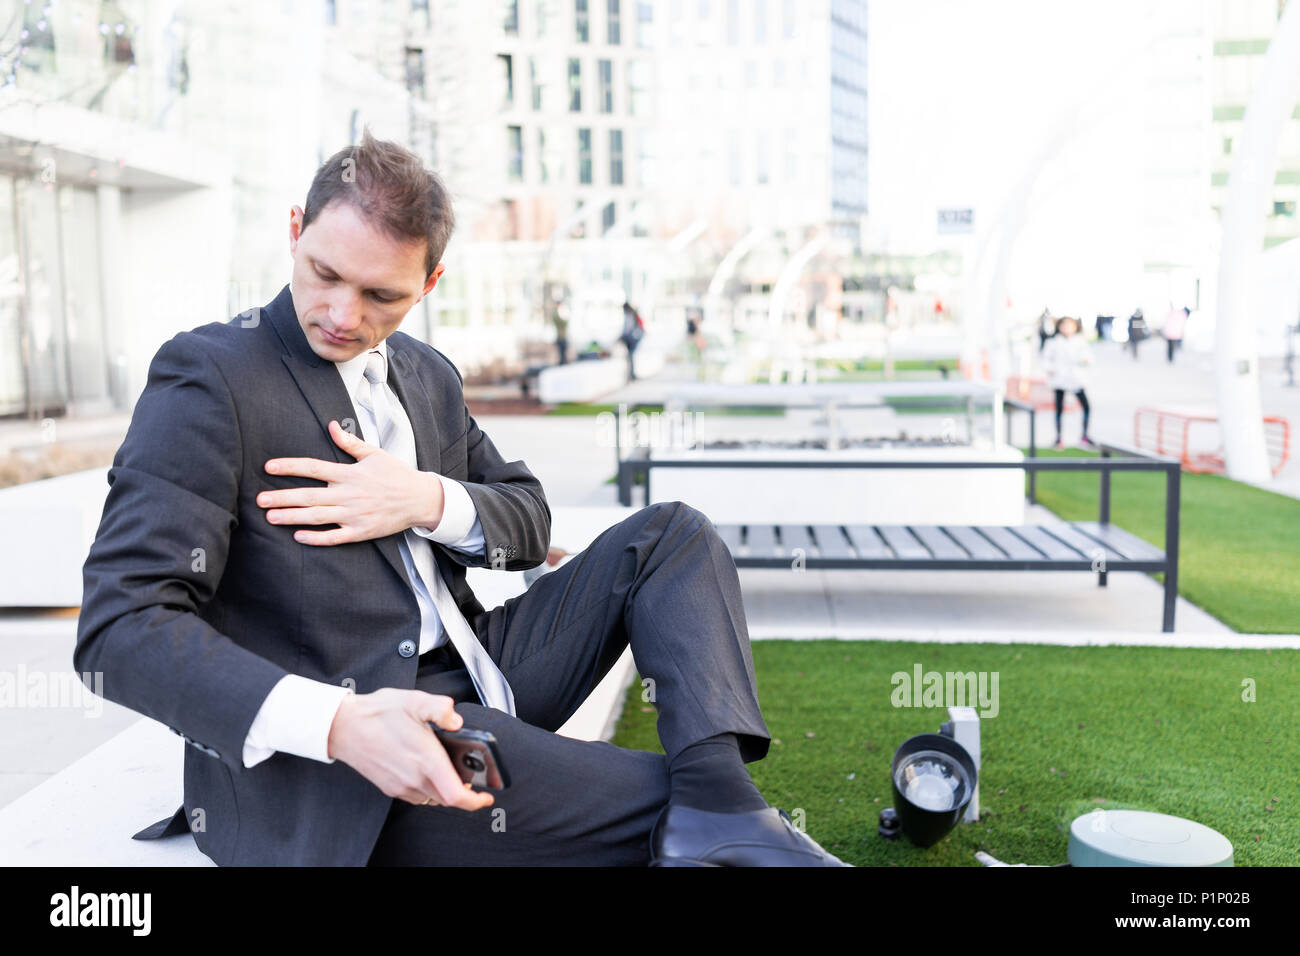 Young businessman cleaning dusting off suit sitting on bench in urban green park looking down with tie on interview break - Stock Image